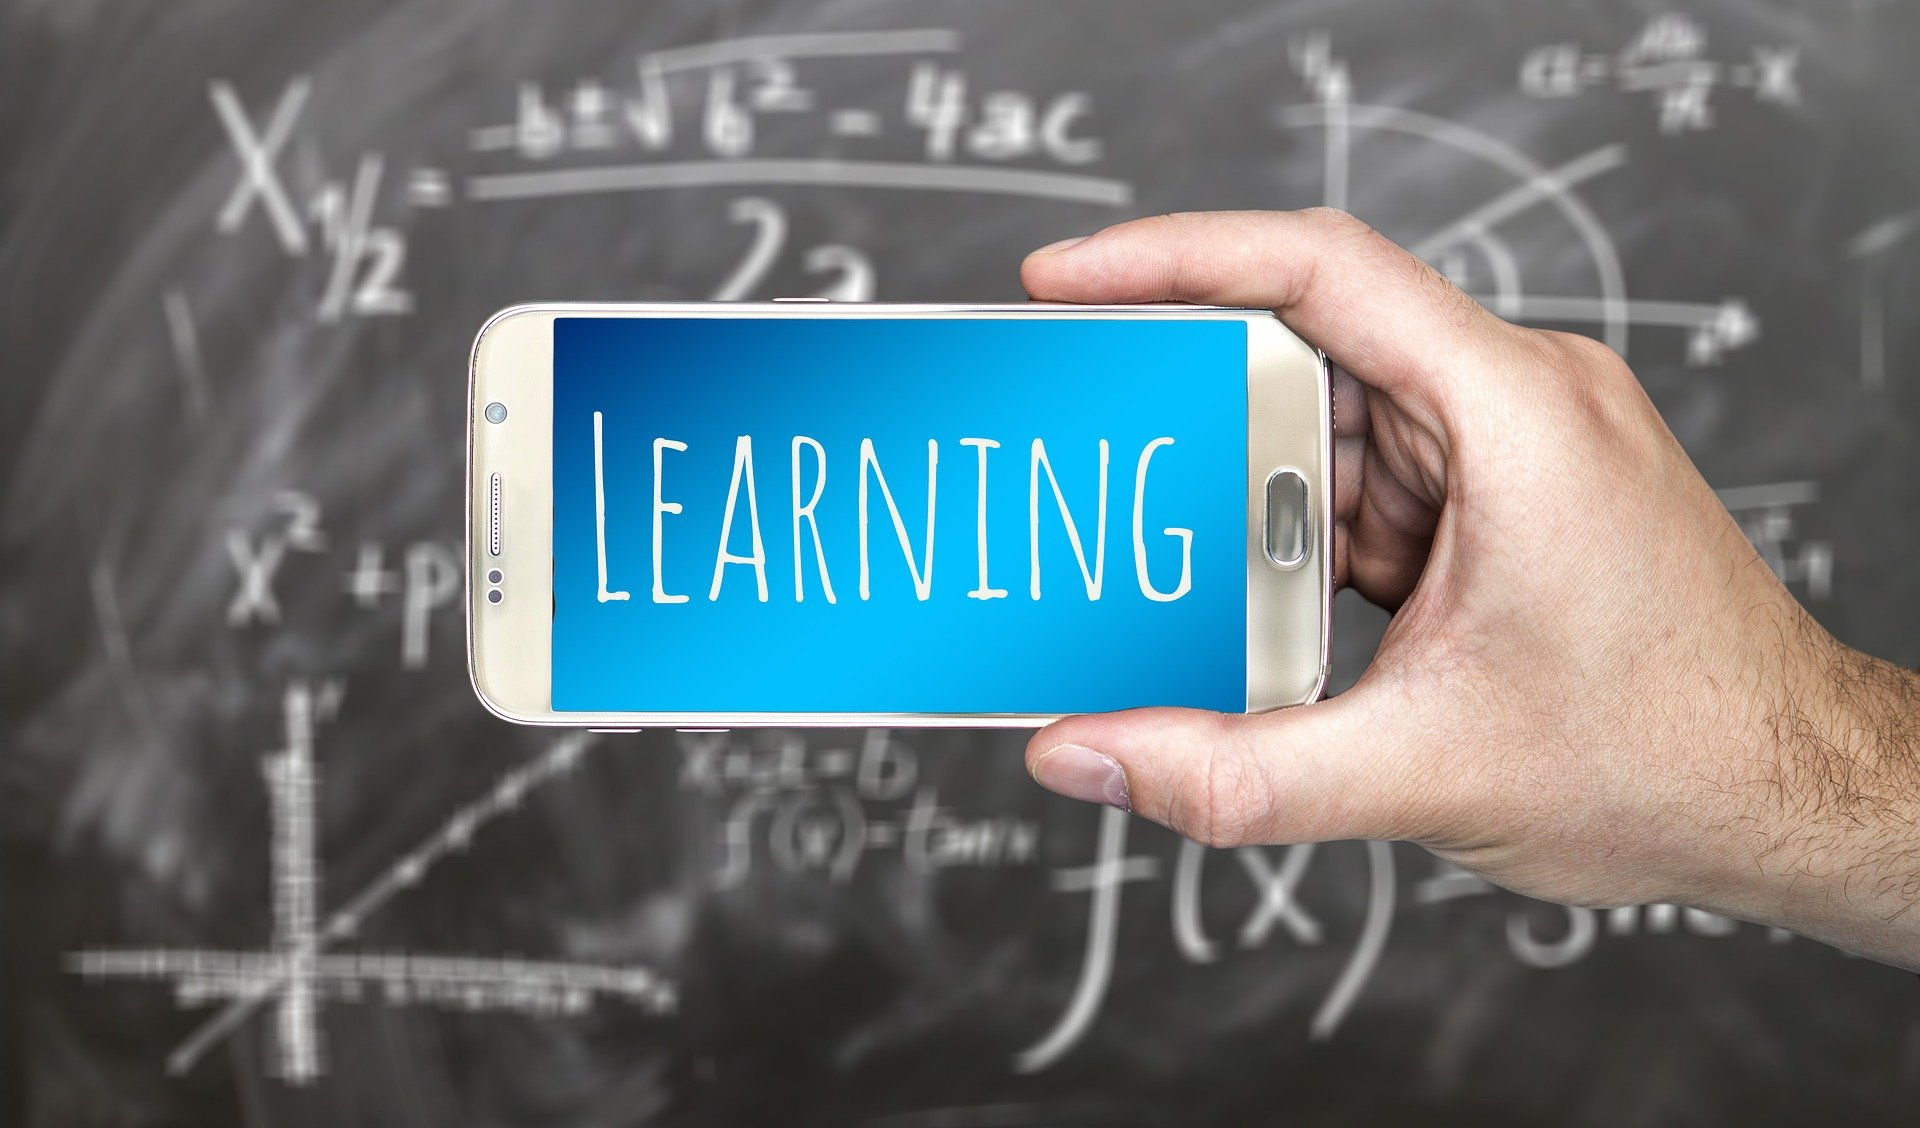 Pictured - A smartphone and mathematics formiulas on the board   Source: Pixabay